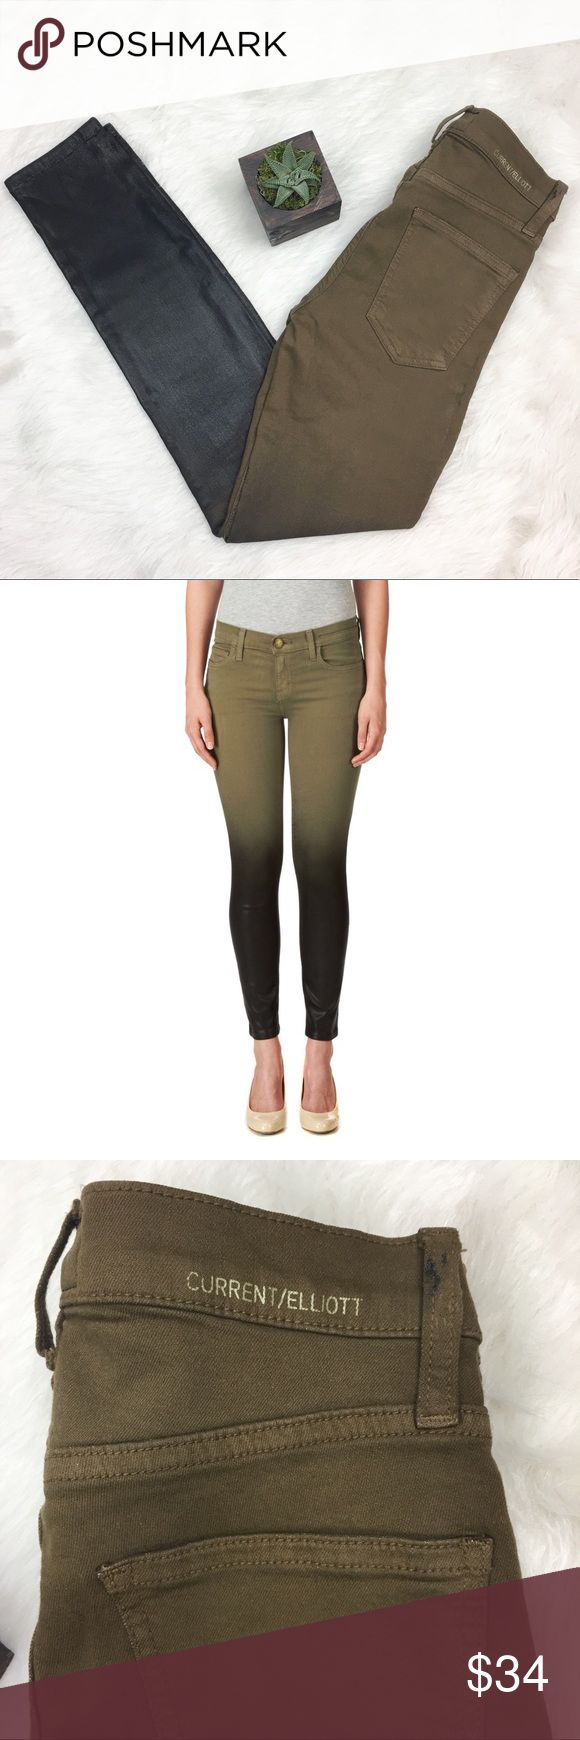 """Current/Elliot Stiletto Ombré Coated Skinny Jeans Current/Elliott """"The Stiletto"""" ombré olive green & blackish brown skinny jeans. Size 23. These have stretch to them. They would fit size 00. See measurement picture above for flat lay measurement. Inseam is 27'. GUC with some of the coated bottom rubbing off on the top part due to being folded in storage. This doesn't seem to take away from jeans at all. ❌No trades ❌ Modeling ❌No PayPal or off Posh transactions ❤️ I Bundles ❤️Reasonable…"""